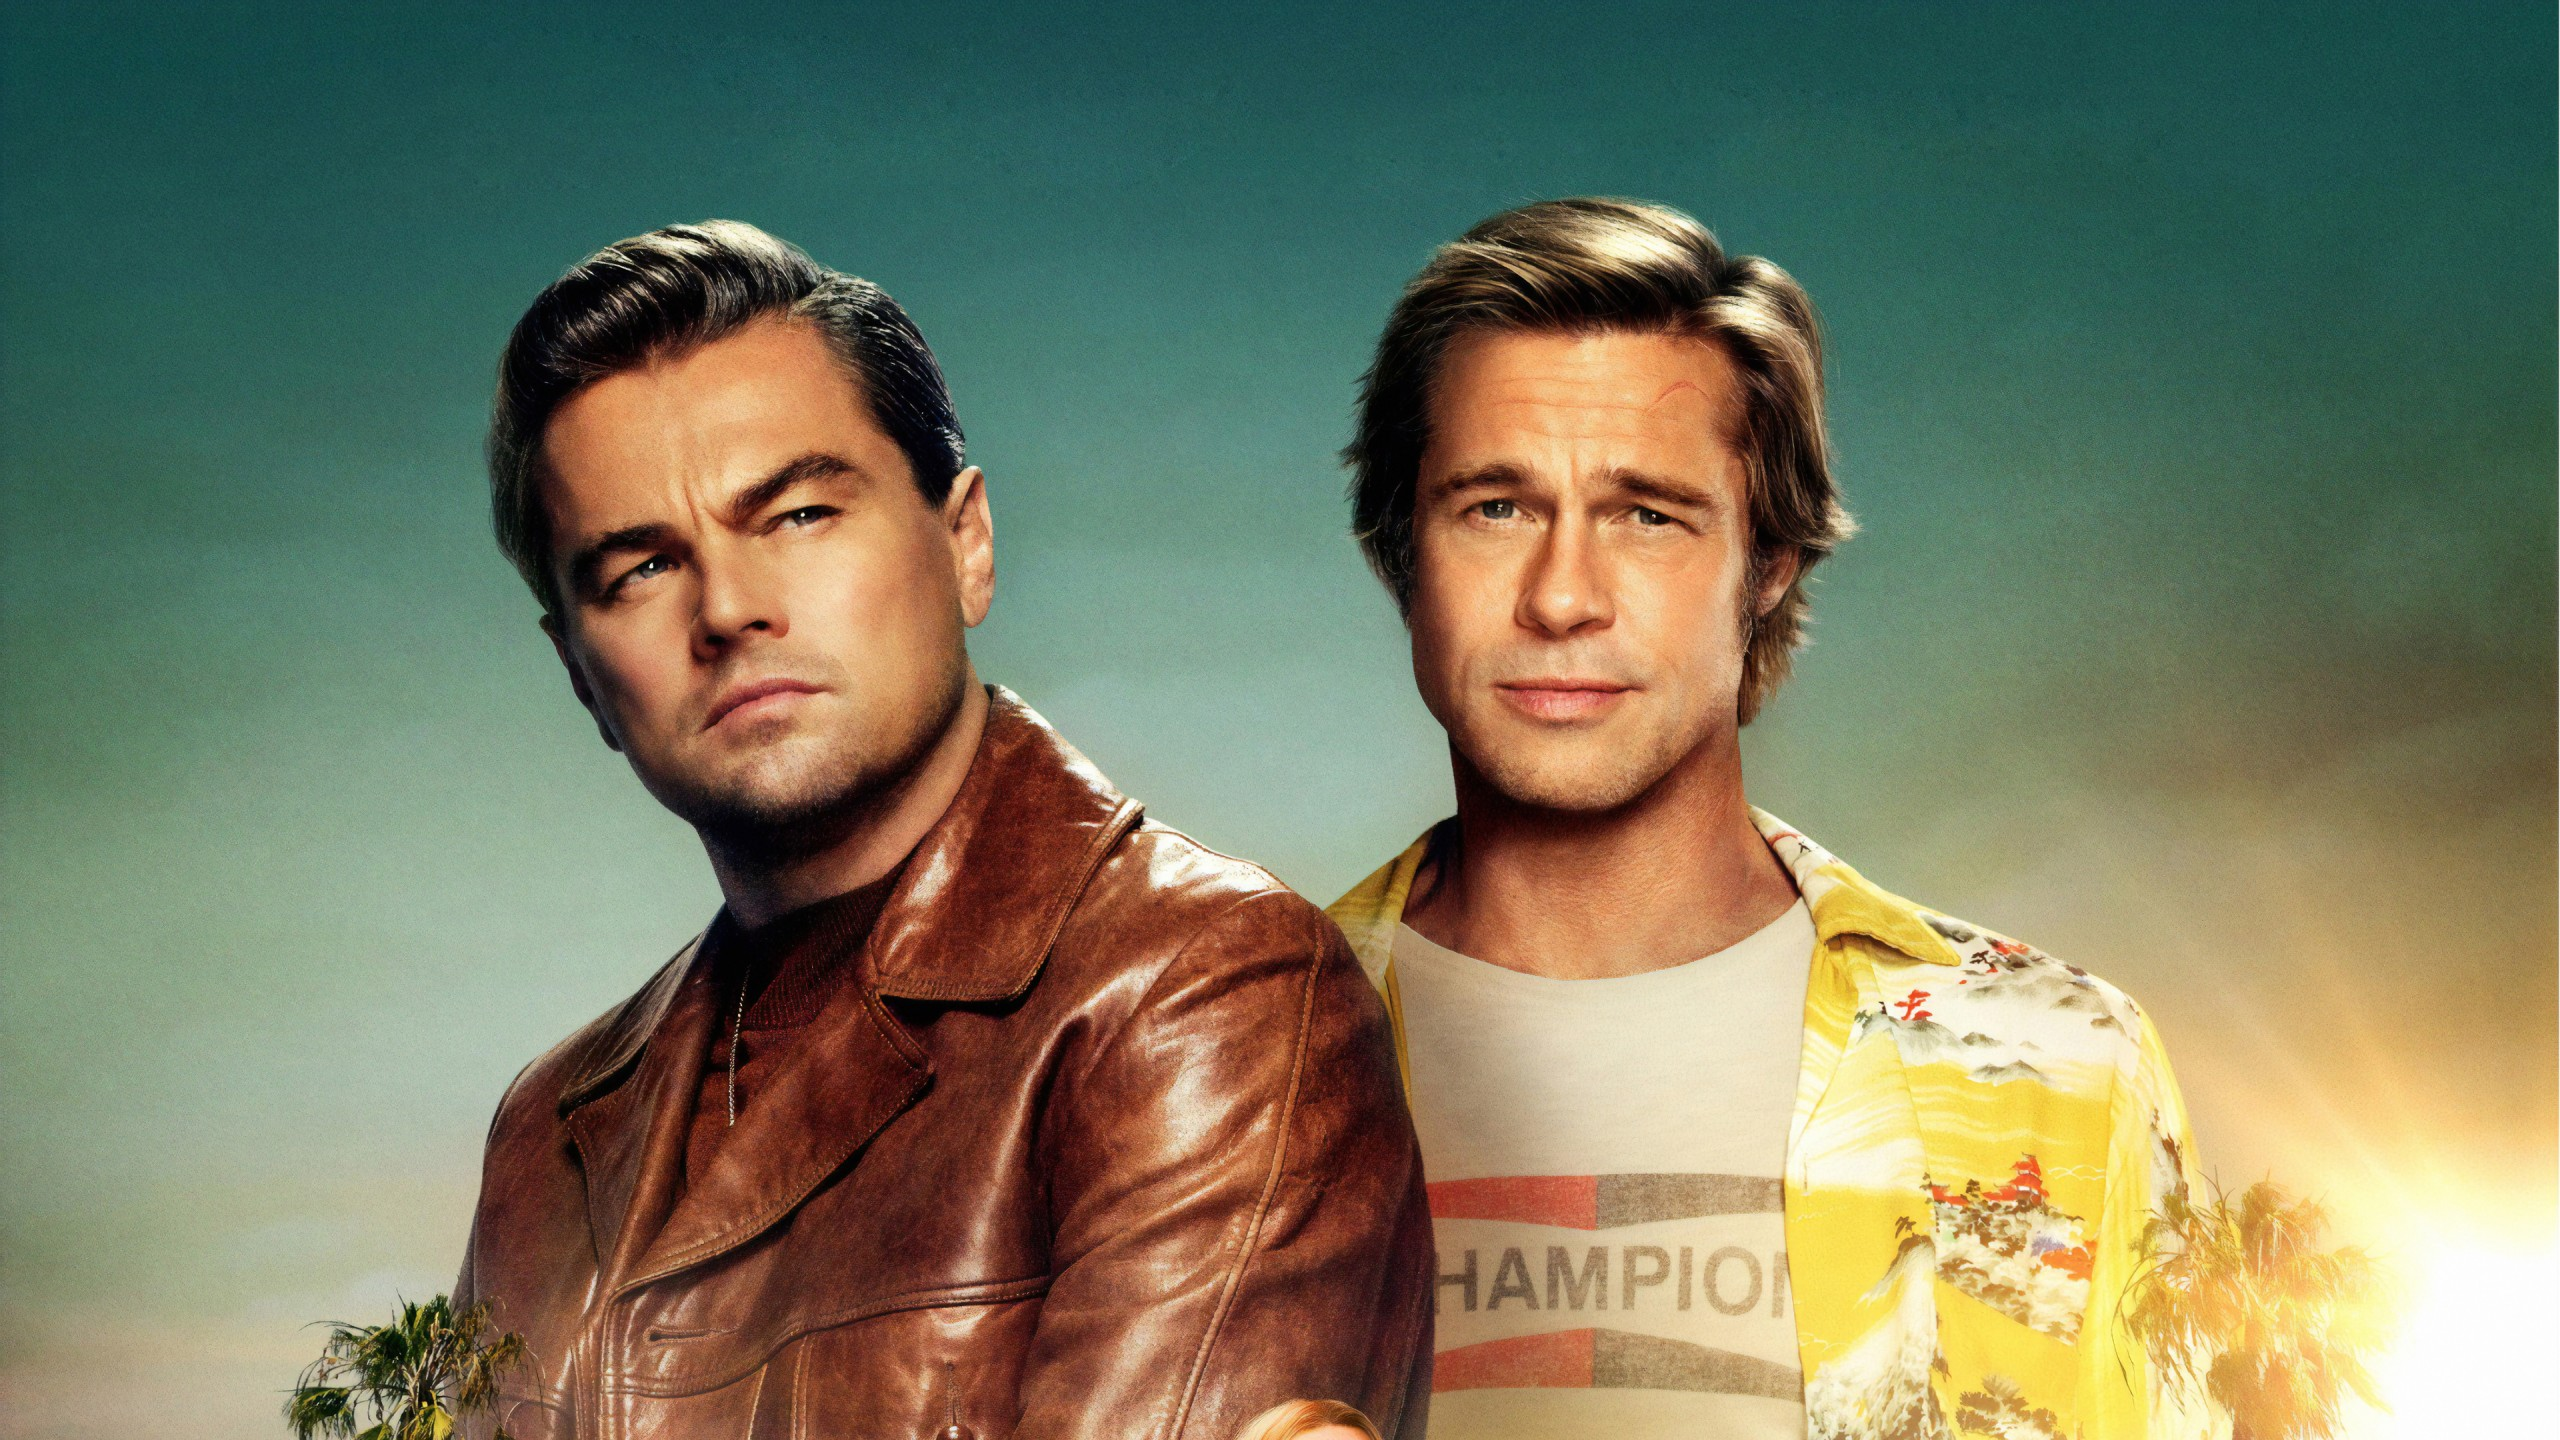 Wallpaper Once Upon A Time In Hollywood, Brad Pitt ... Ben Kingsley